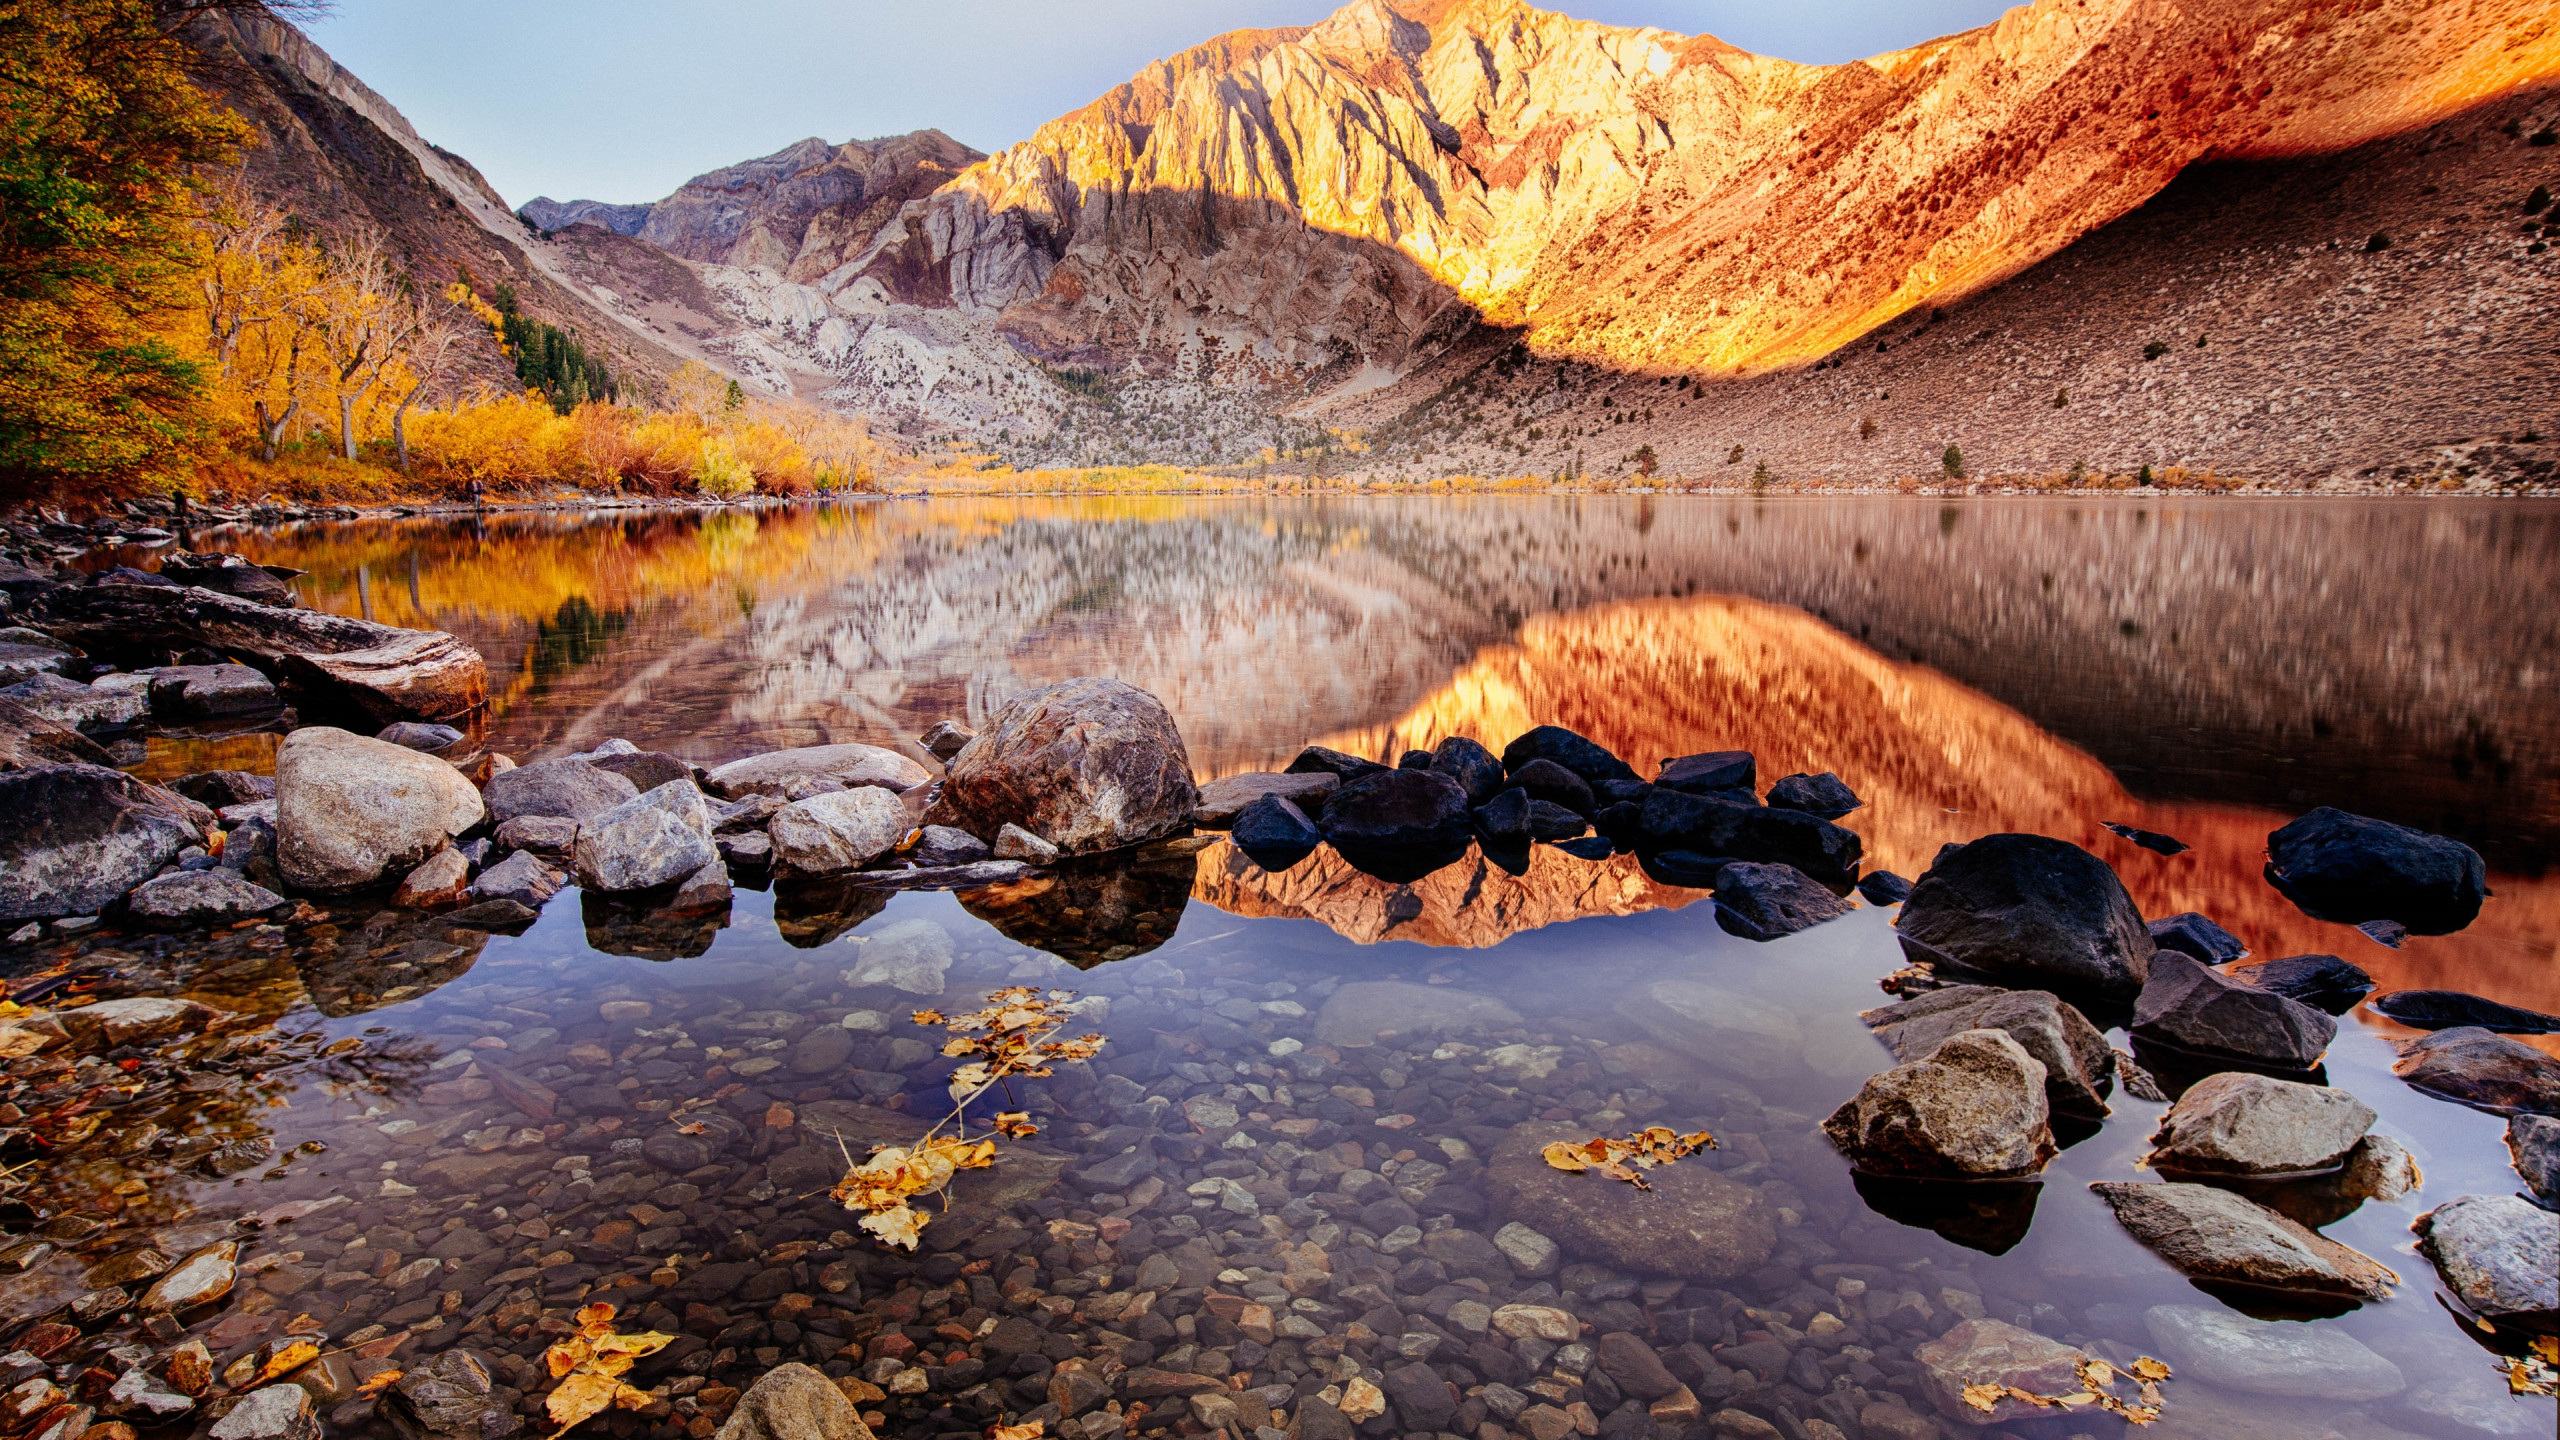 Convict lake wallpaper 2560x1440